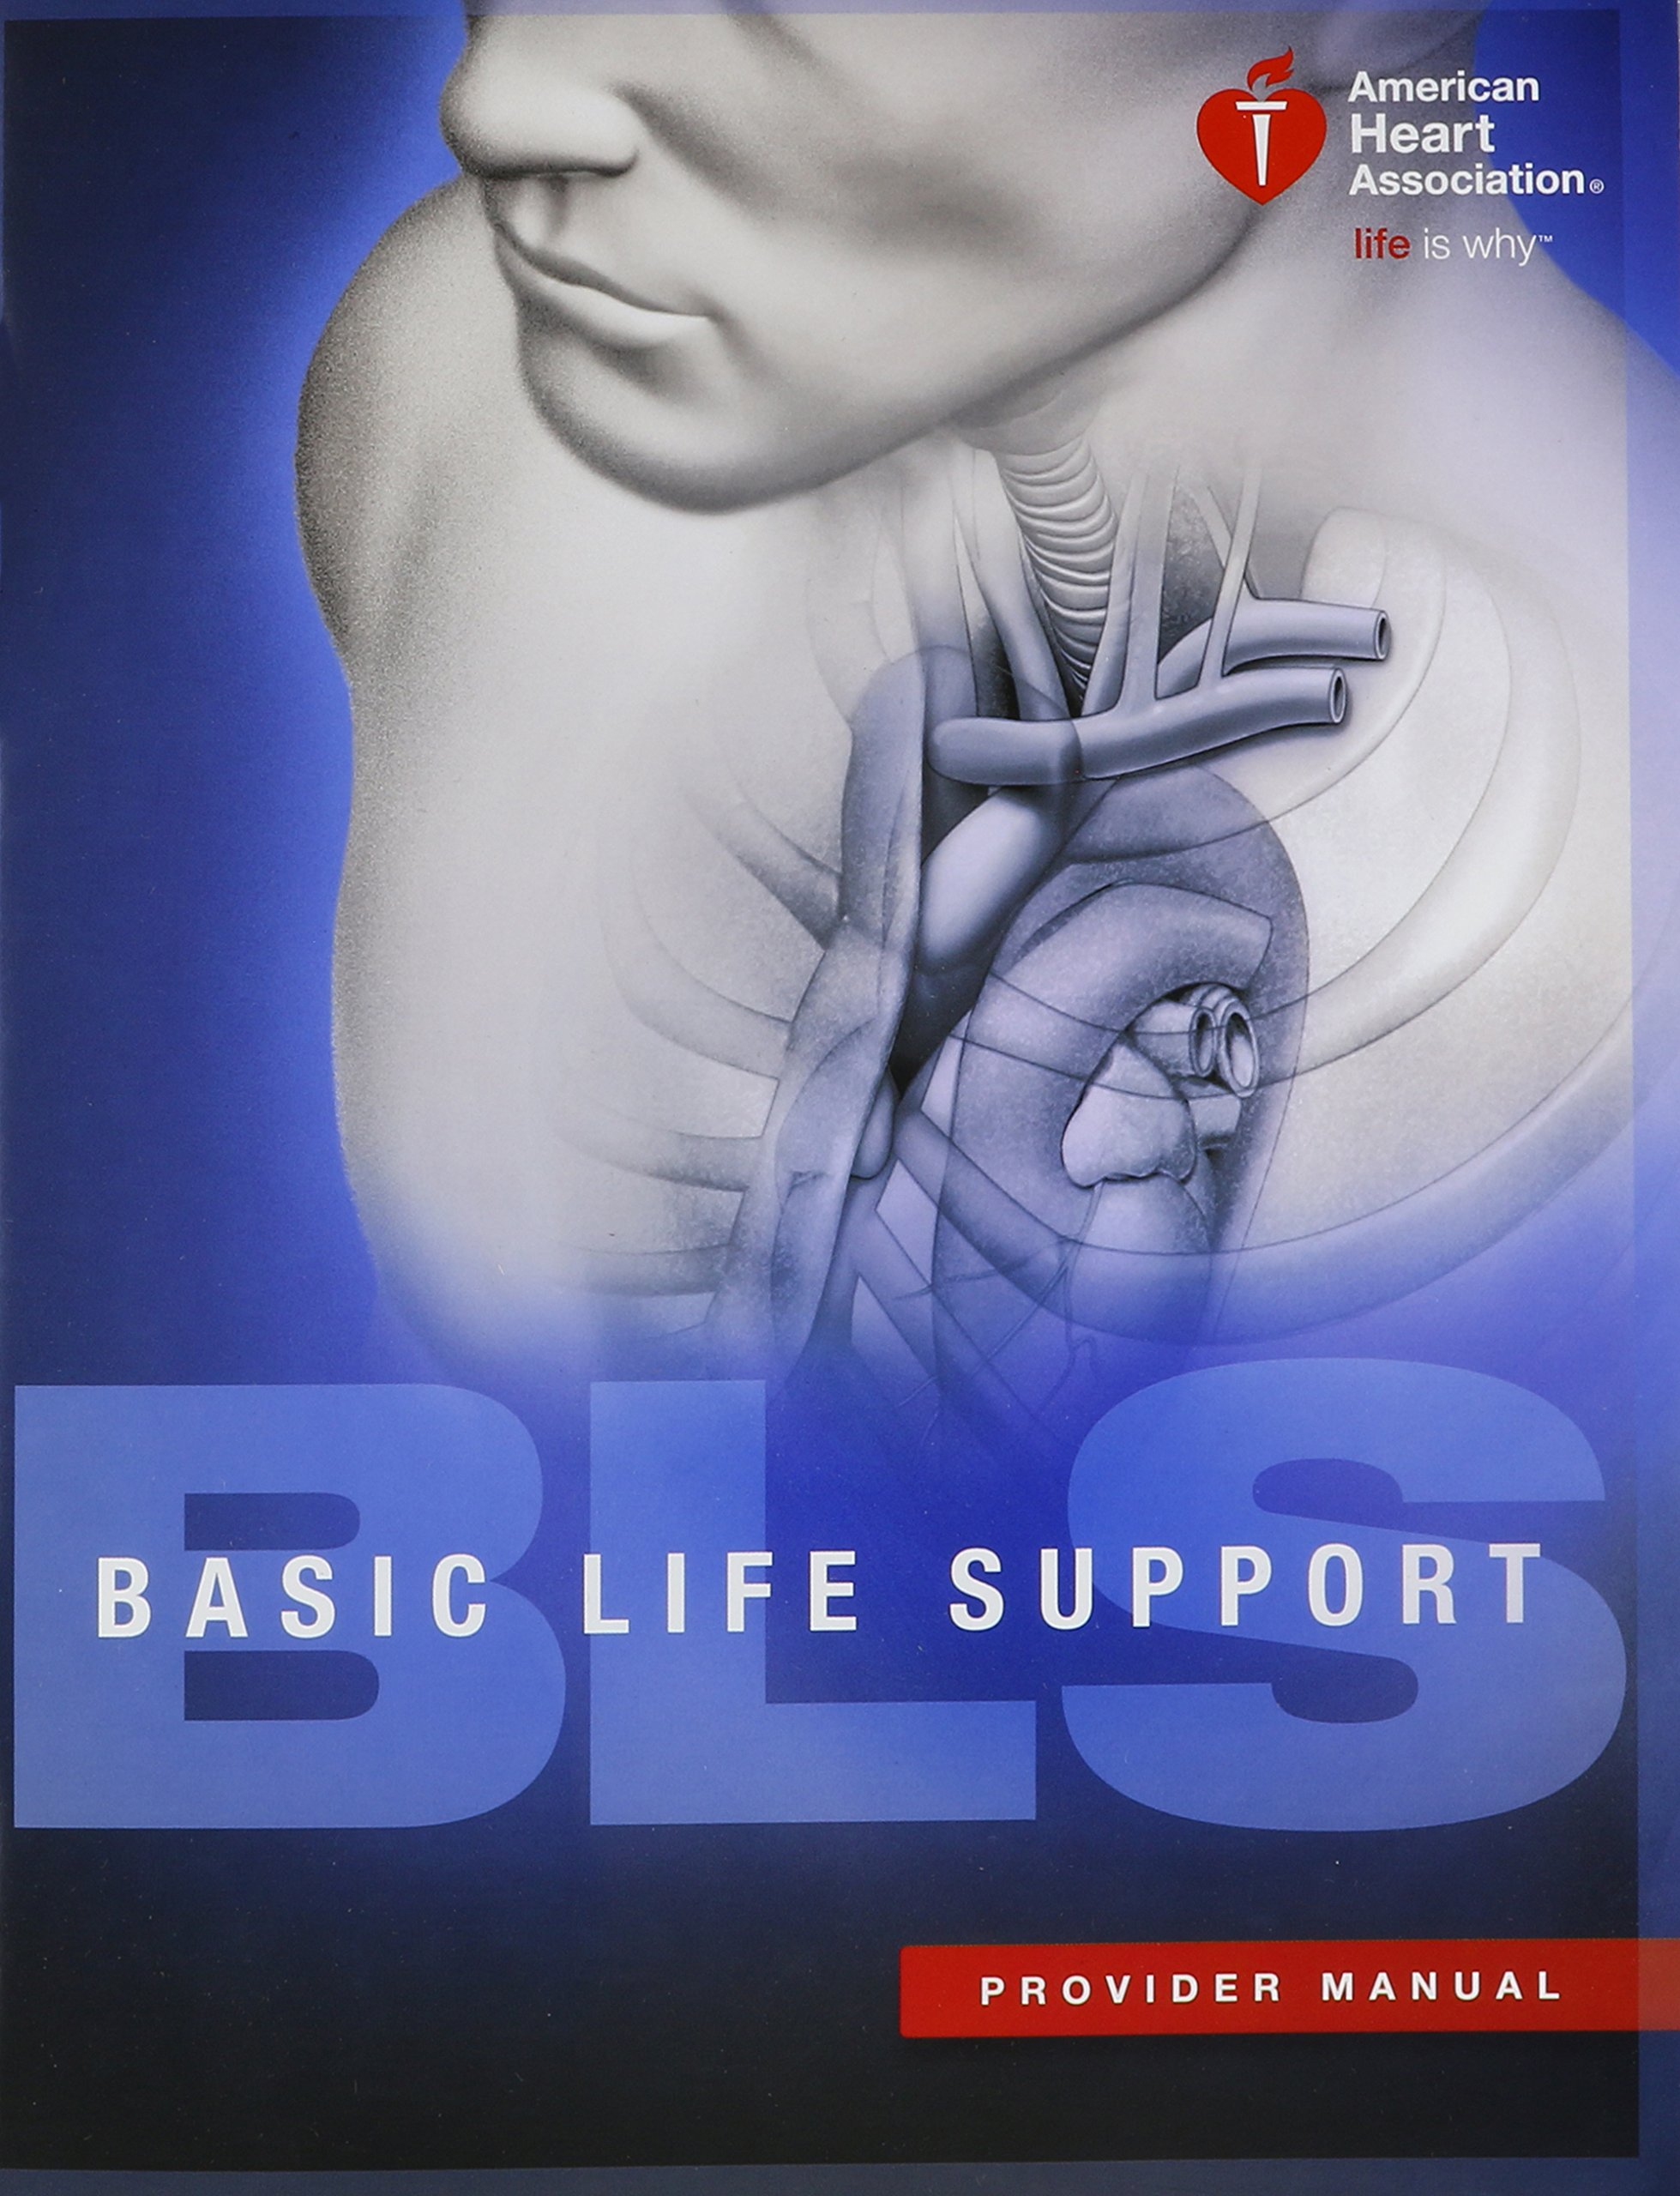 Bls Basic Life Support Provider Manual American Heart Association